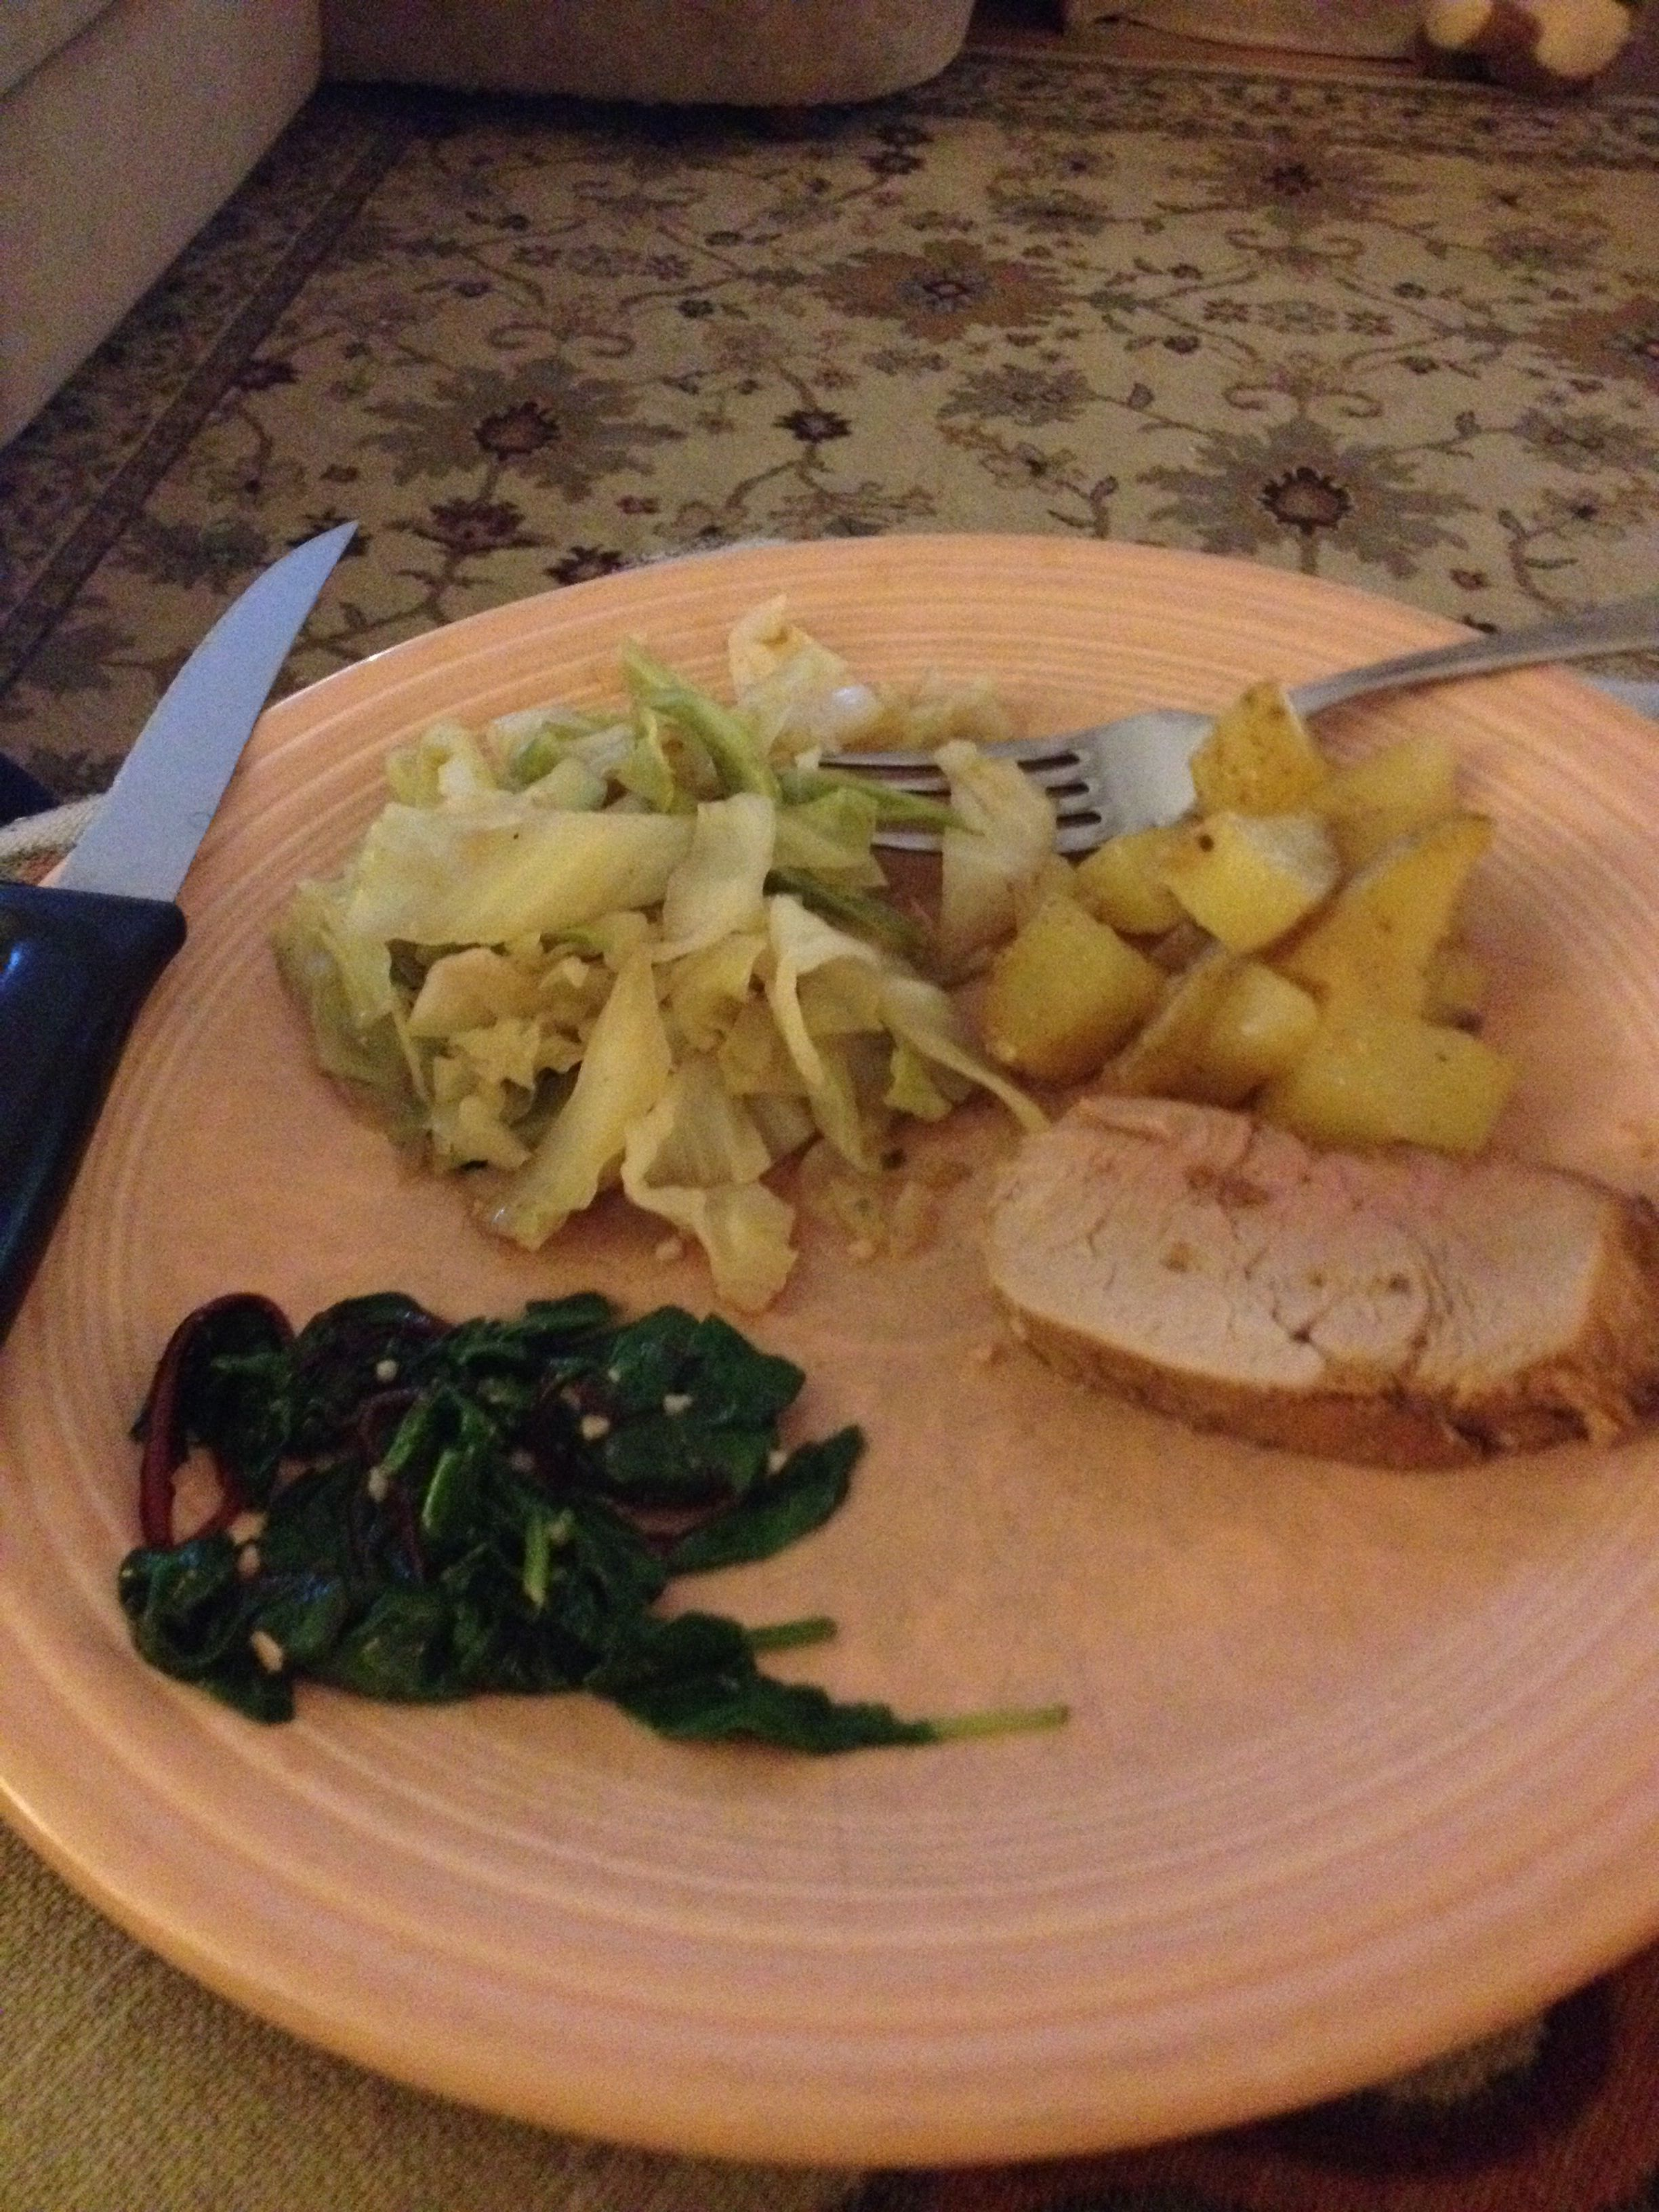 Cooked cabbage, wilted greens, roasted potatoes and pork tenderloin (2 greens, 1 yellow, 1 red and 2 teaspoons)